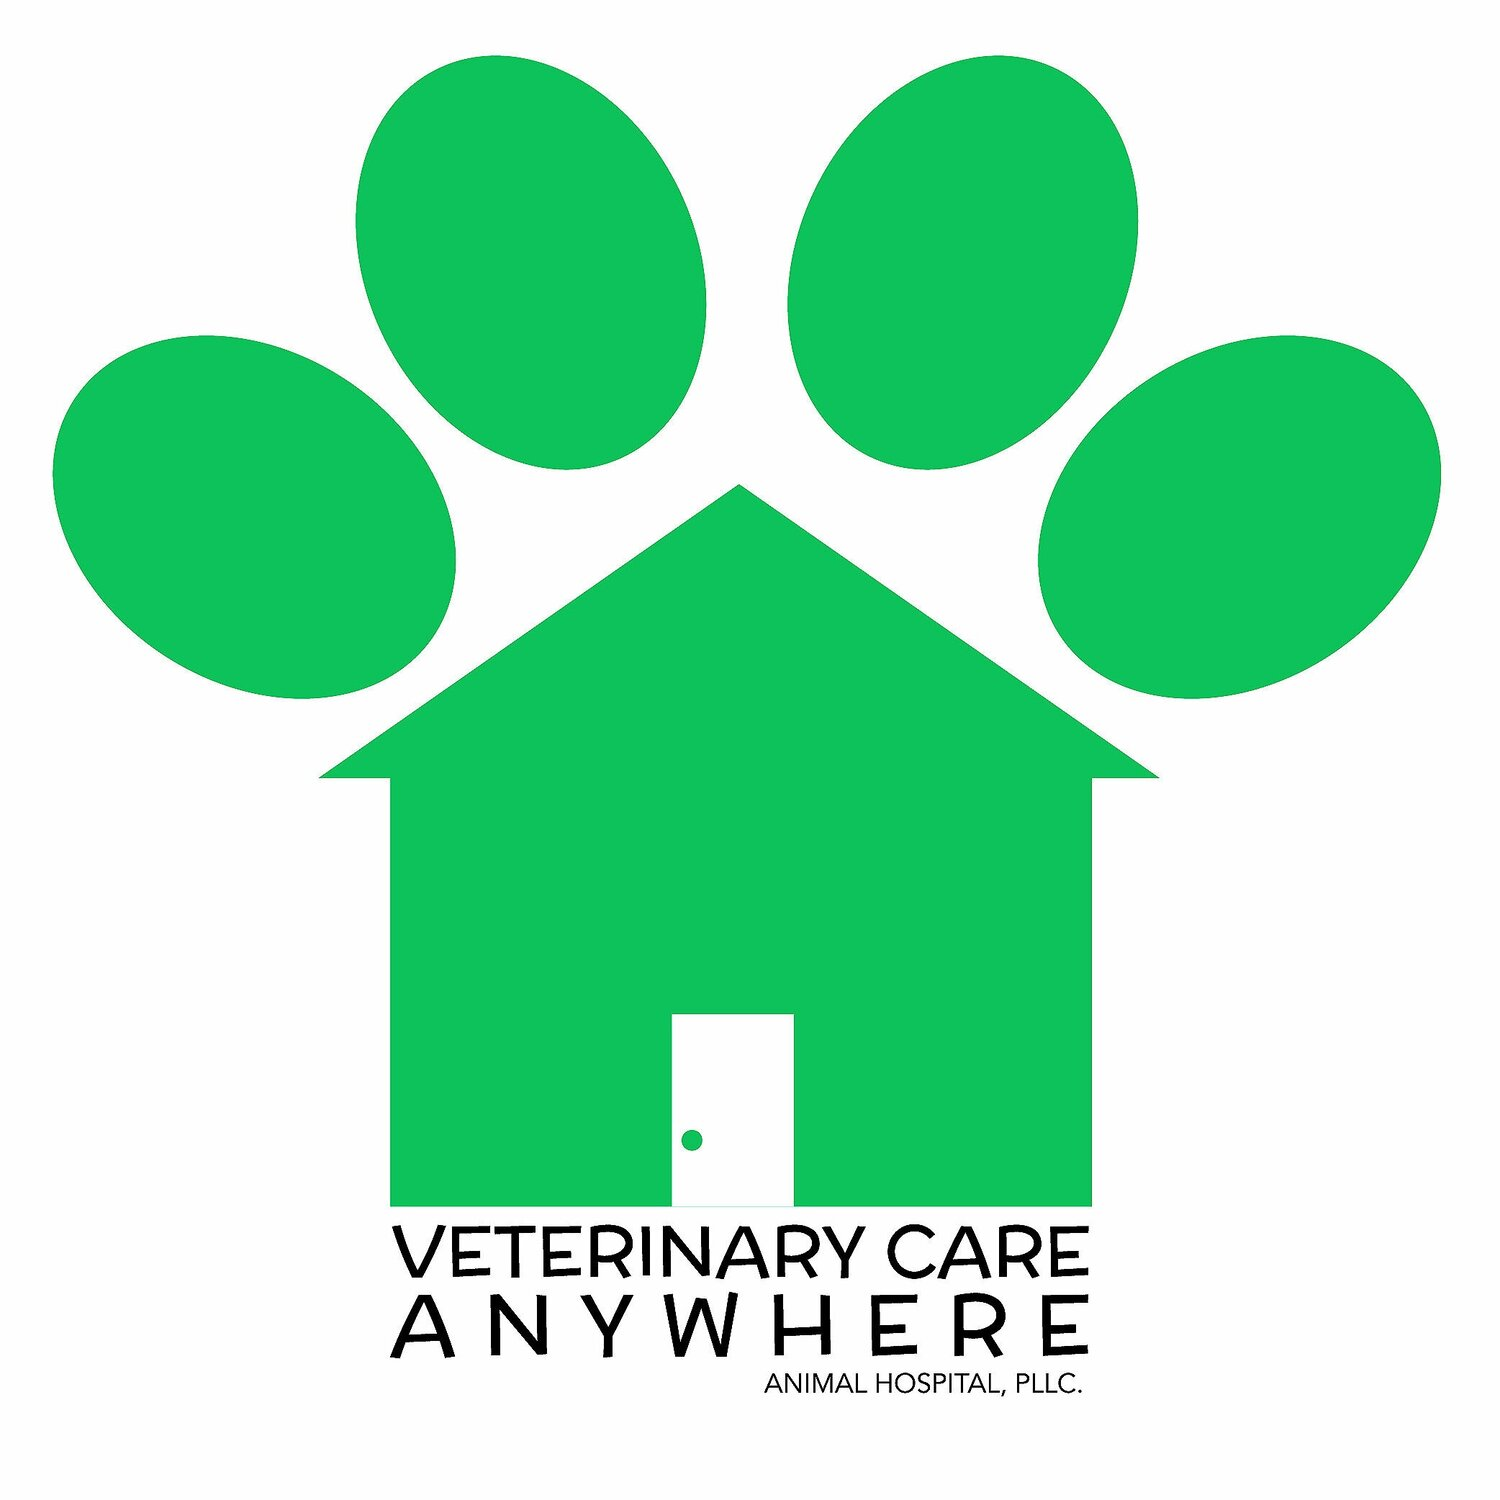 Veterinary Care Anywhere Animal Hospital, PLLC